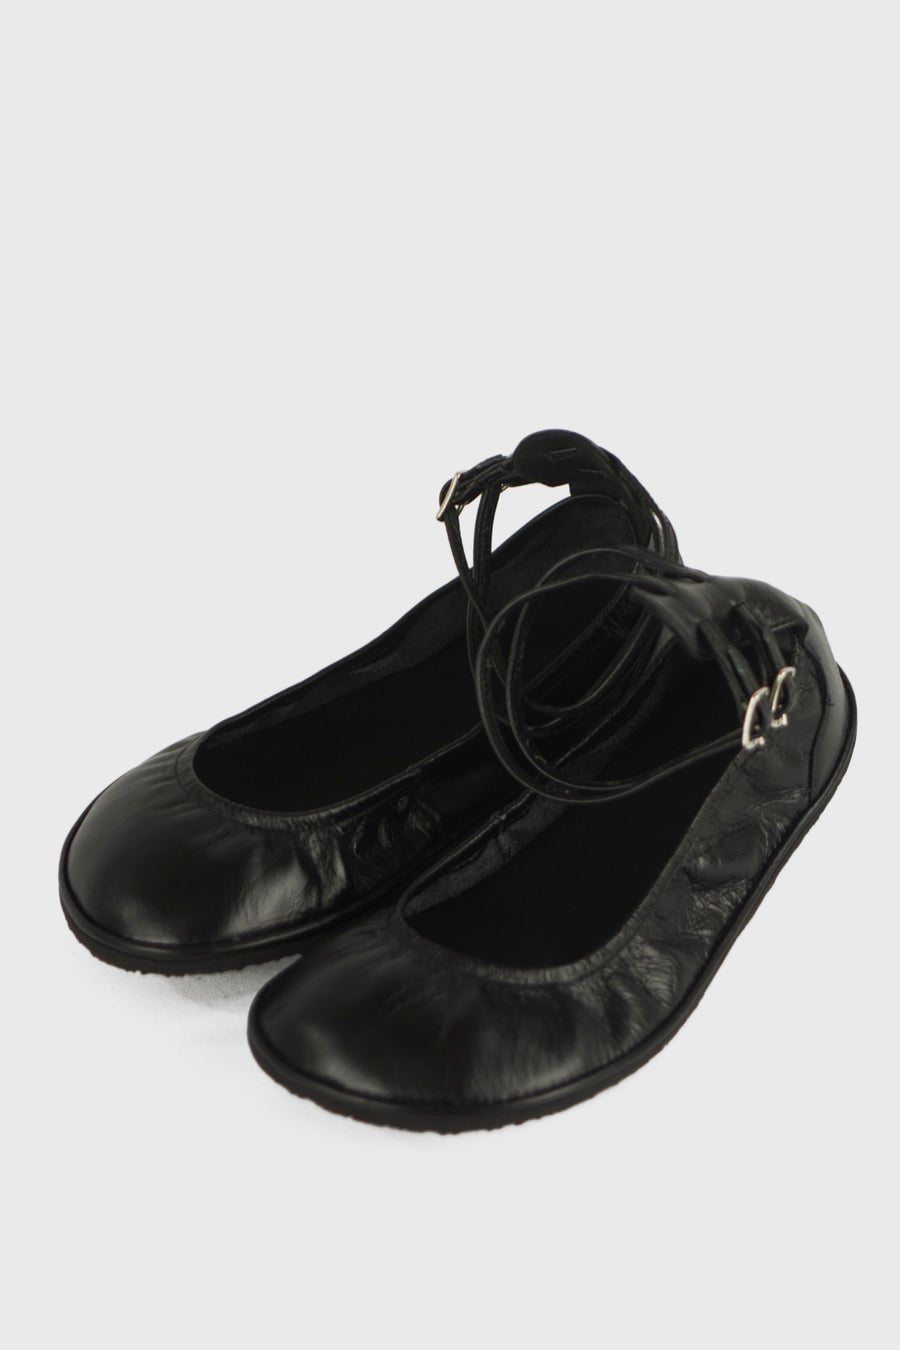 Image of Ballet flats - Two ankle straps - 35 EU